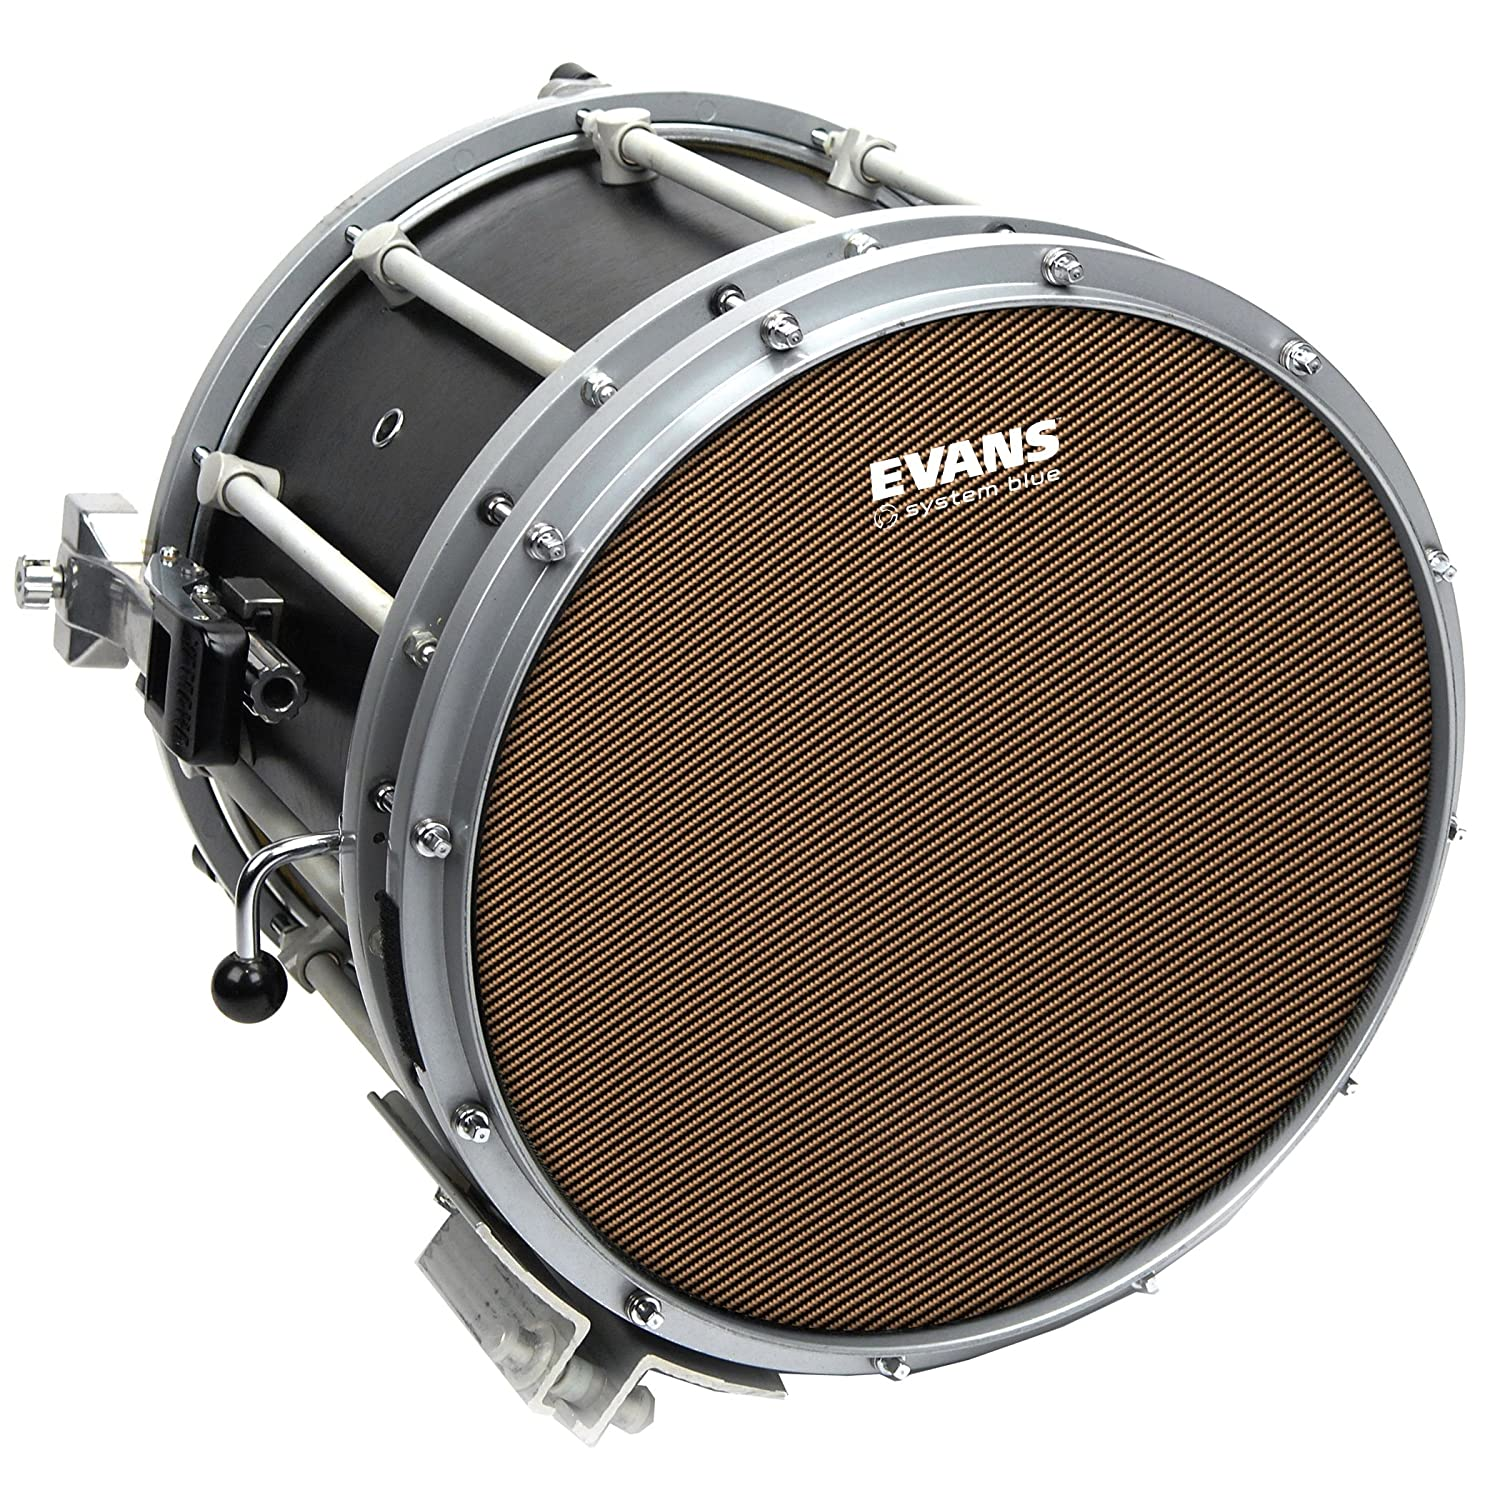 Evans SB13MSB System Blue Marching Snare Drum Head, 13 Inch D' Addario &Co. Inc